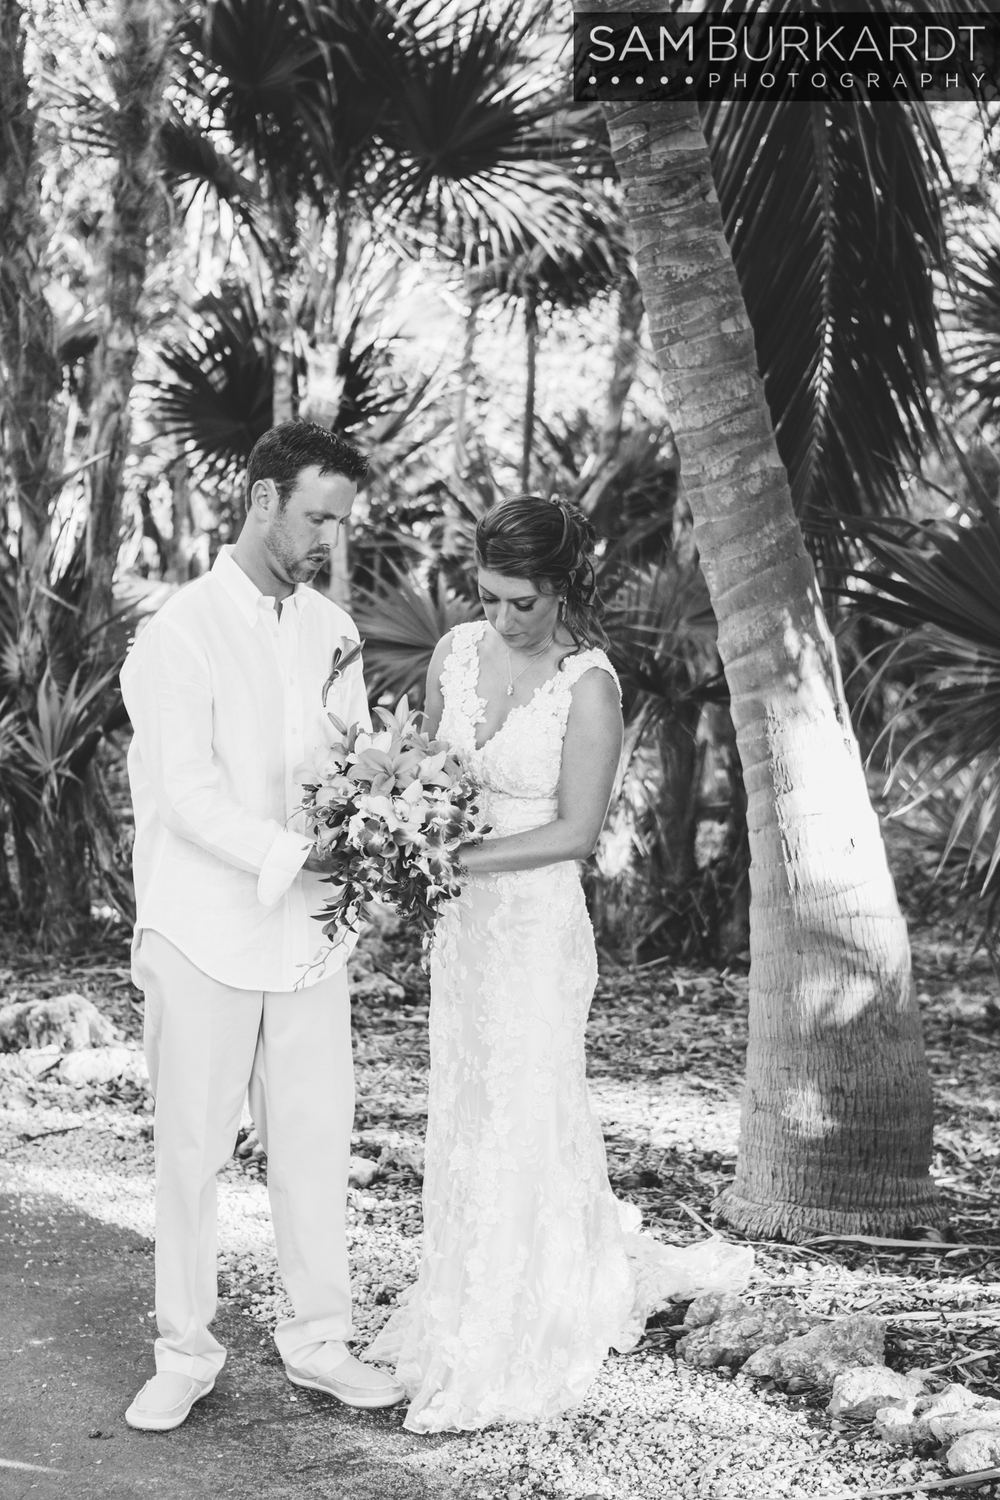 samburkardt_key_west_wedding_marathon_florida_summer_beach_ocean_front_0045.jpg